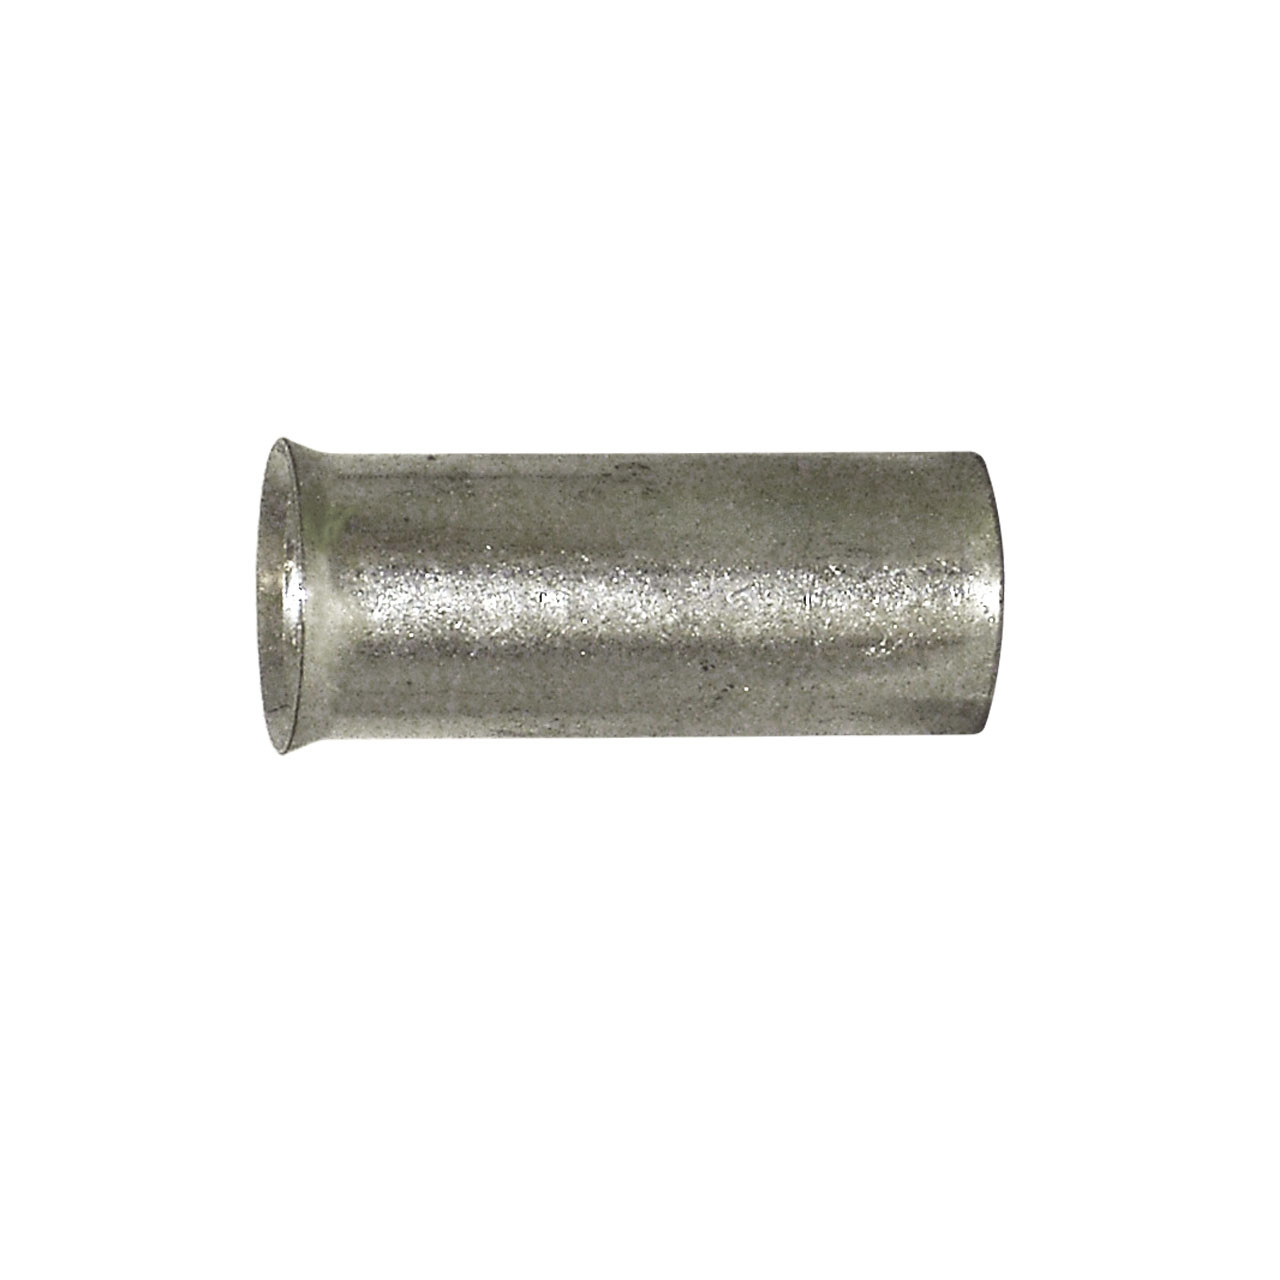 FERRULE 2/0 UNINSULATED 32MM L